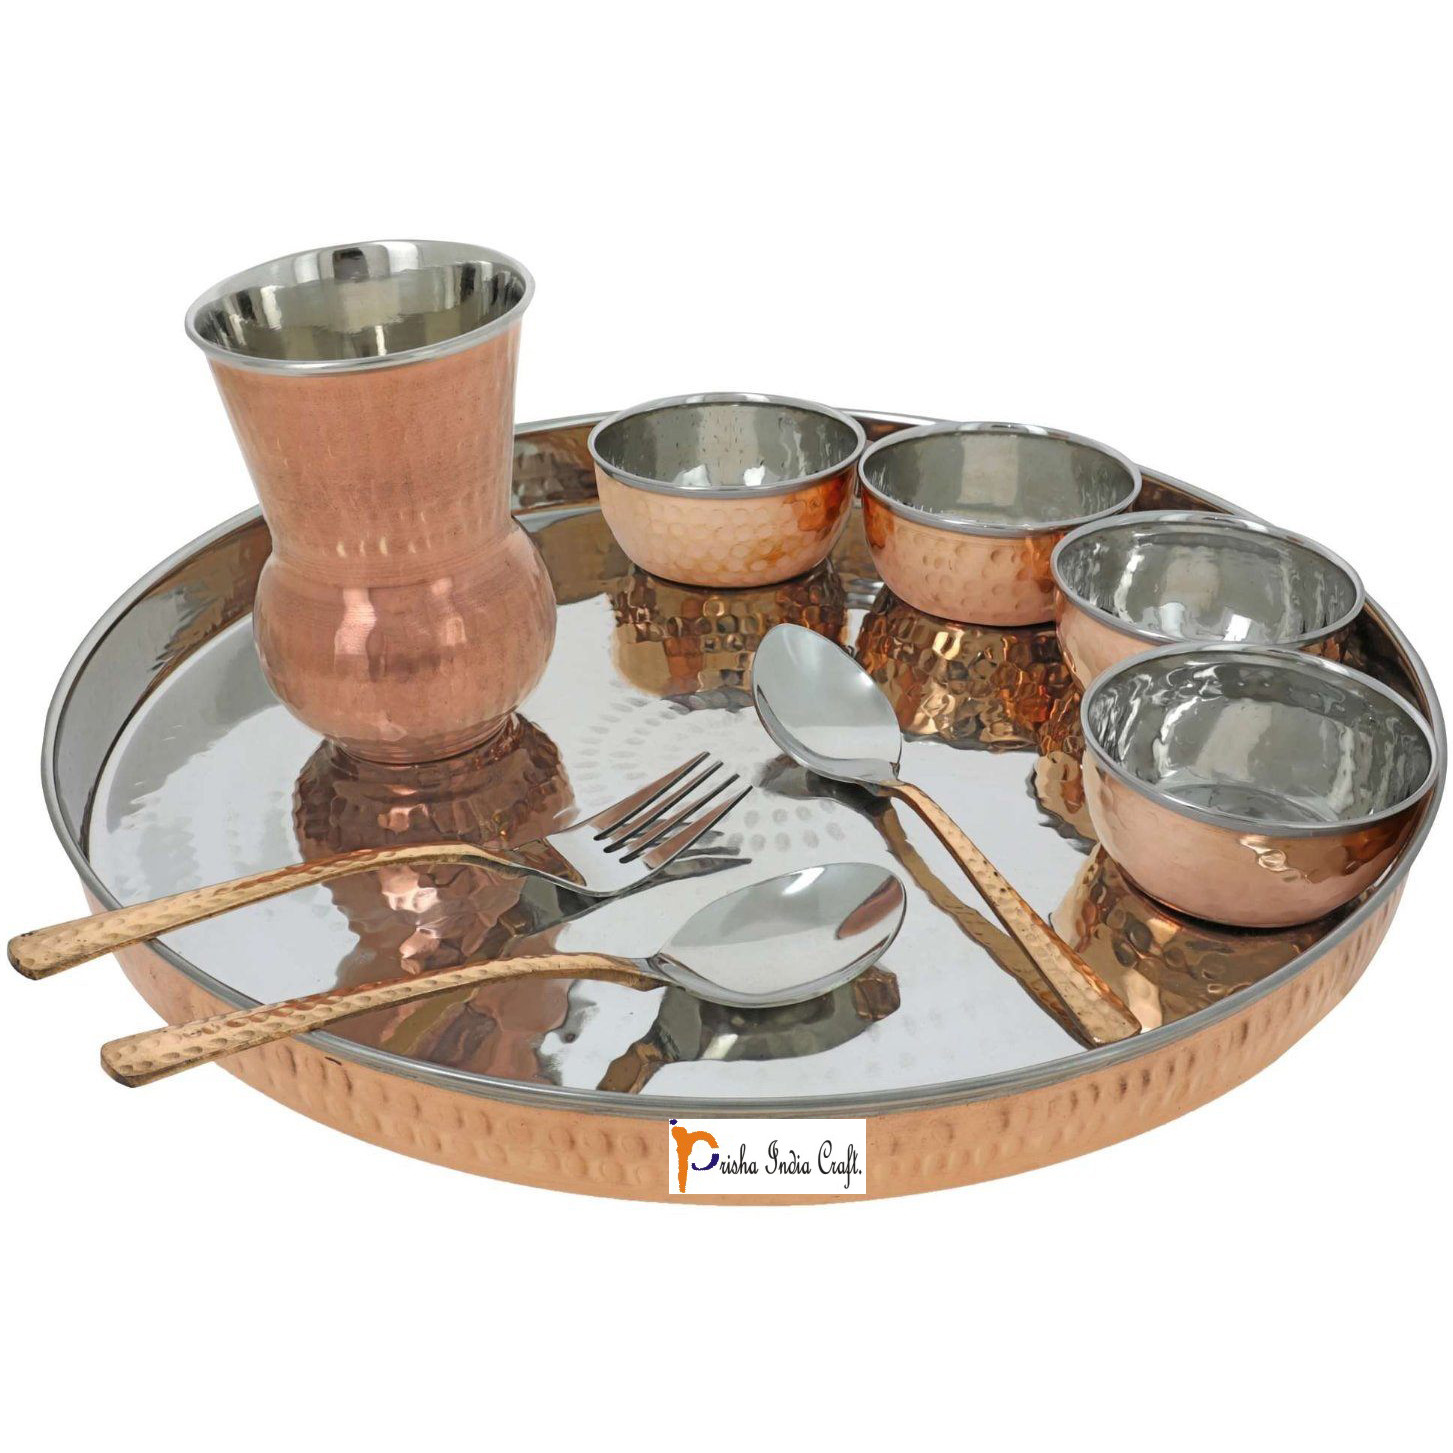 Prisha India Craft B. Set of 4 Dinnerware Traditional Stainless Steel Copper Dinner Set of Thali Plate, Bowls, Glass and Spoons, Dia 13  With 1 Pure Copper Pitcher Jug - Christmas Gift